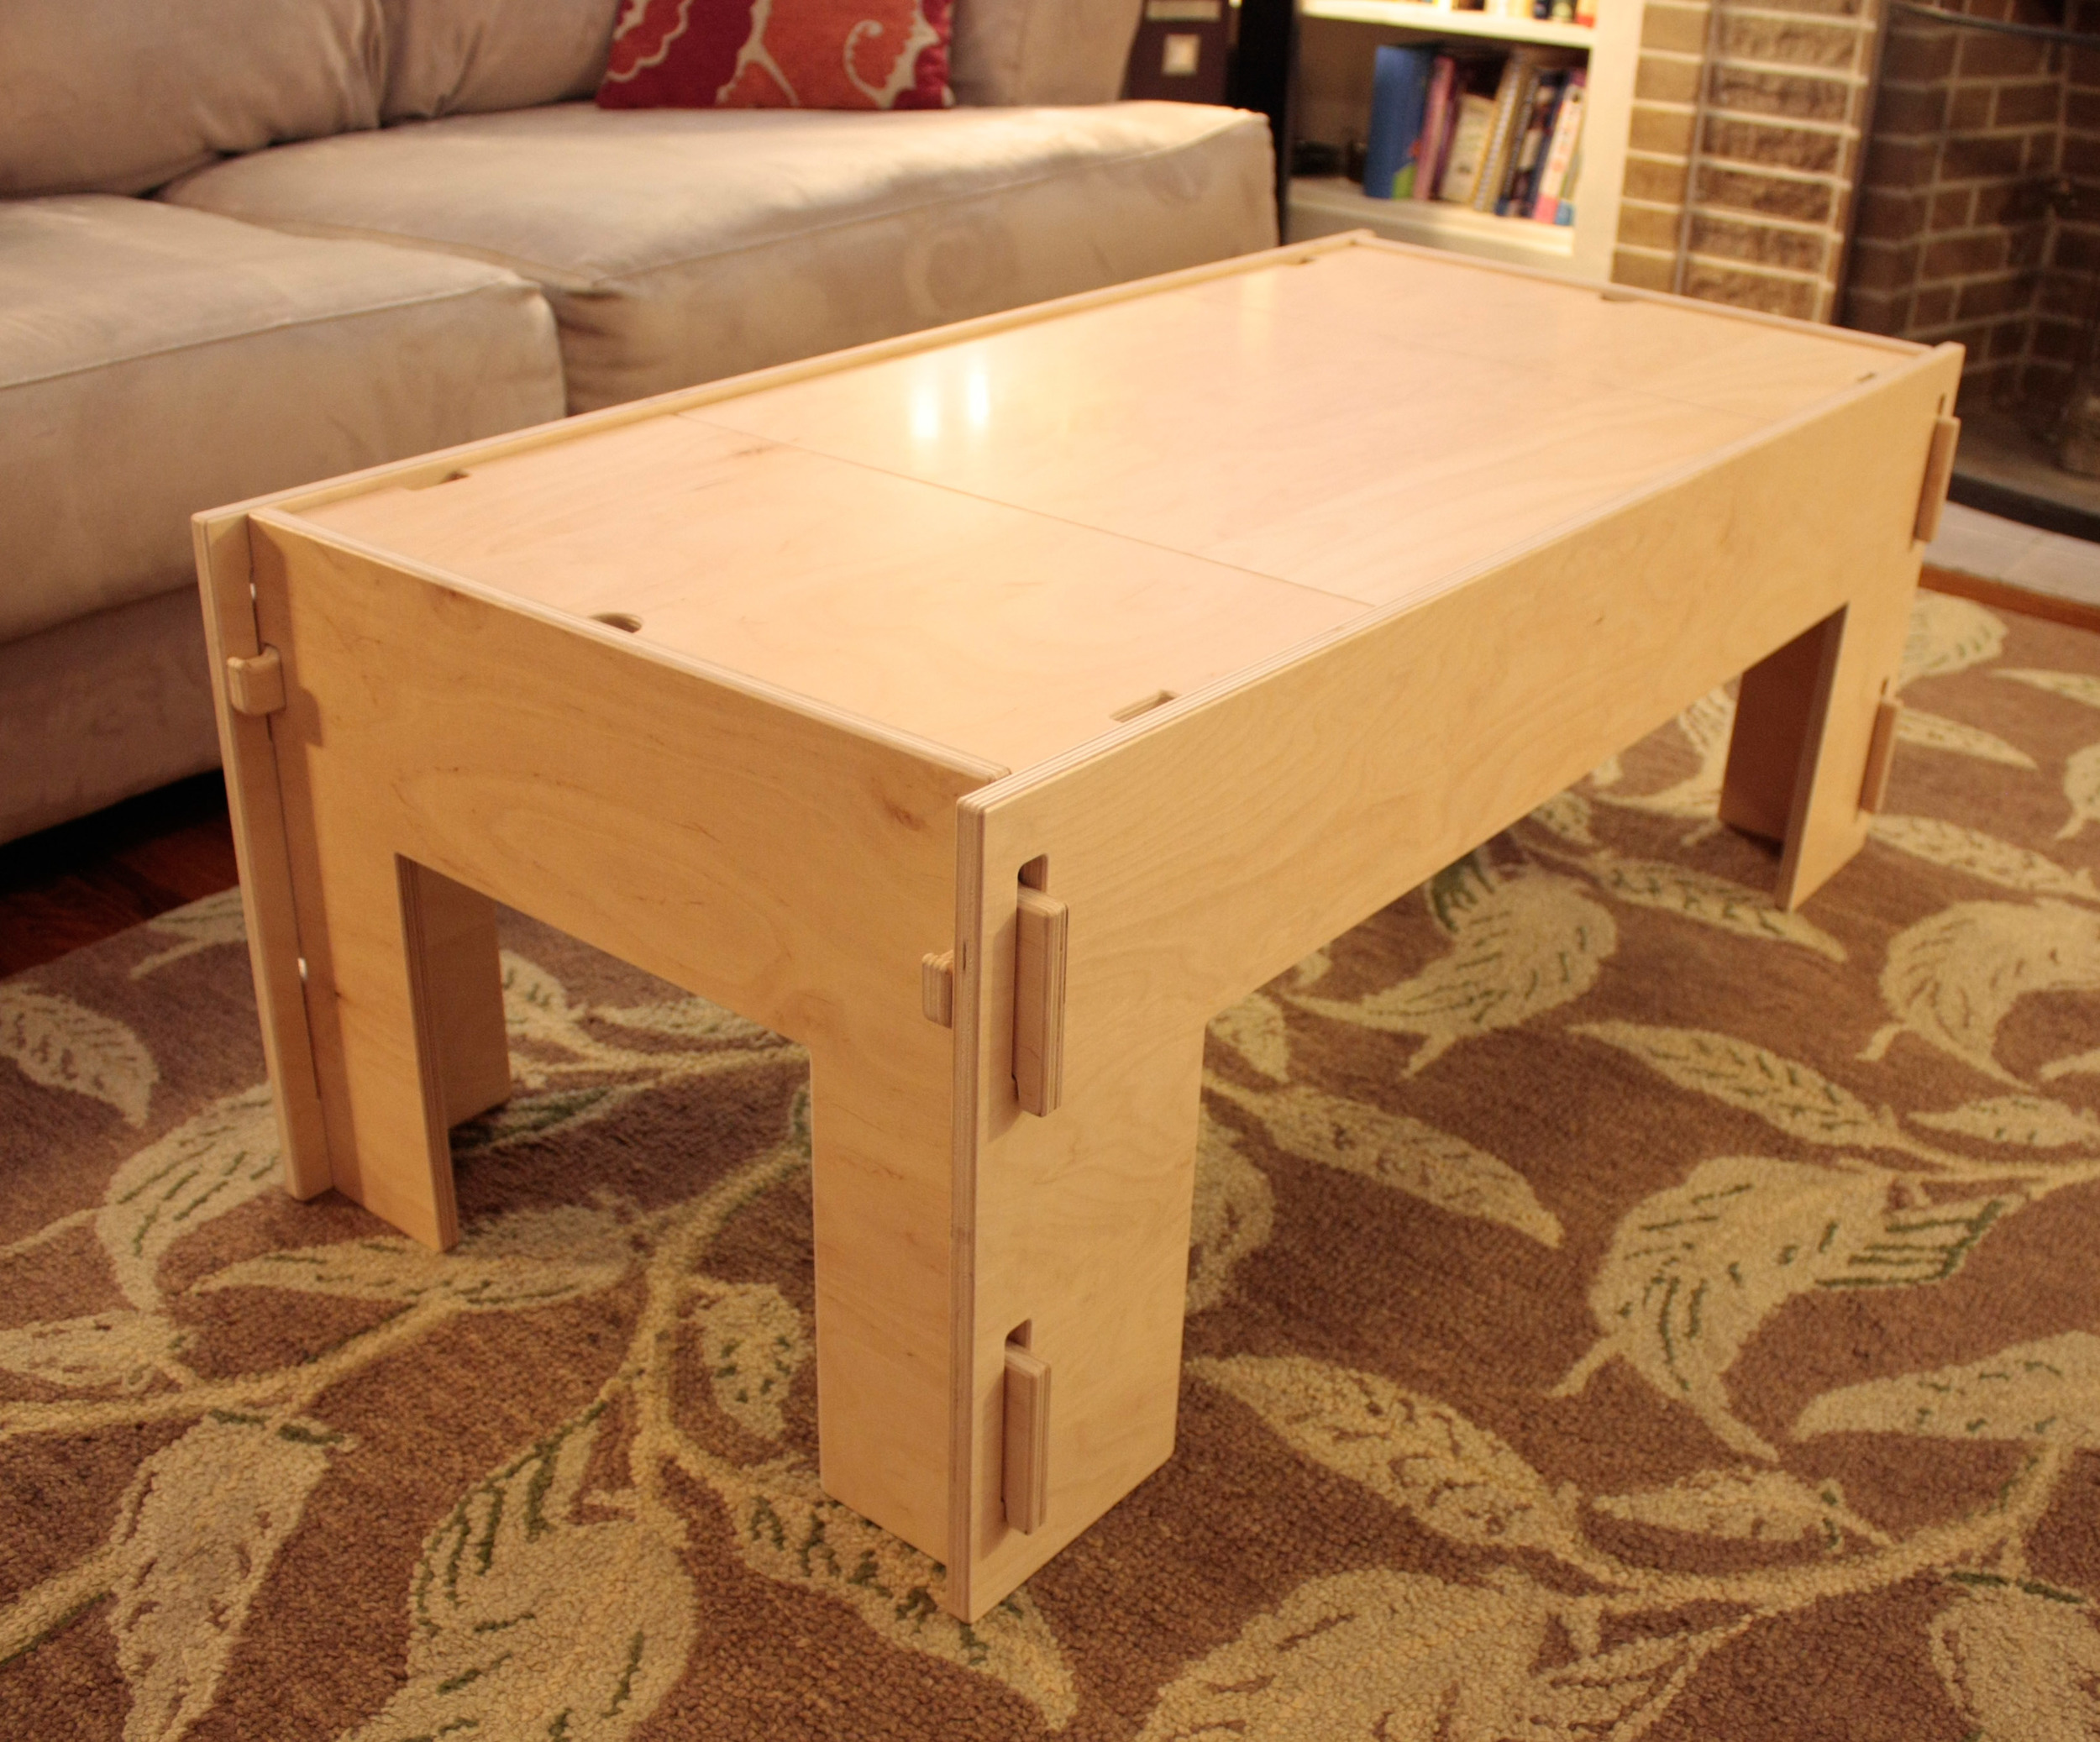 Storage Coffee Table (also available with lower shelf)